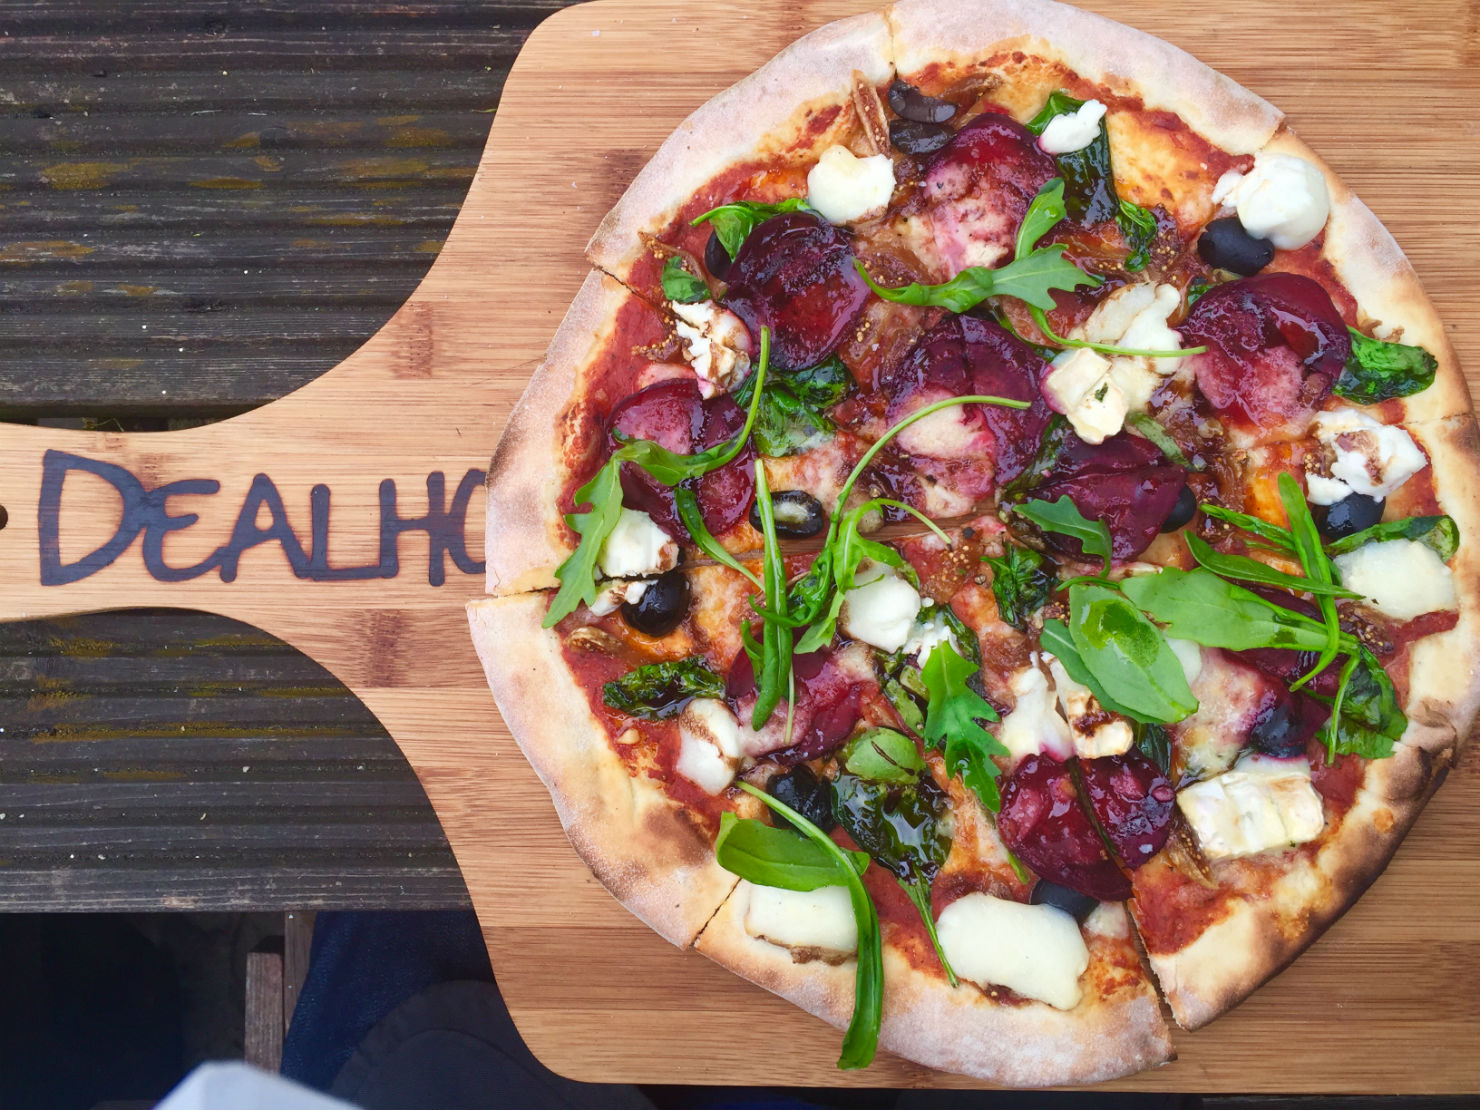 Quality wood-fired pizzas at the Deal Hoy. Photo: SE